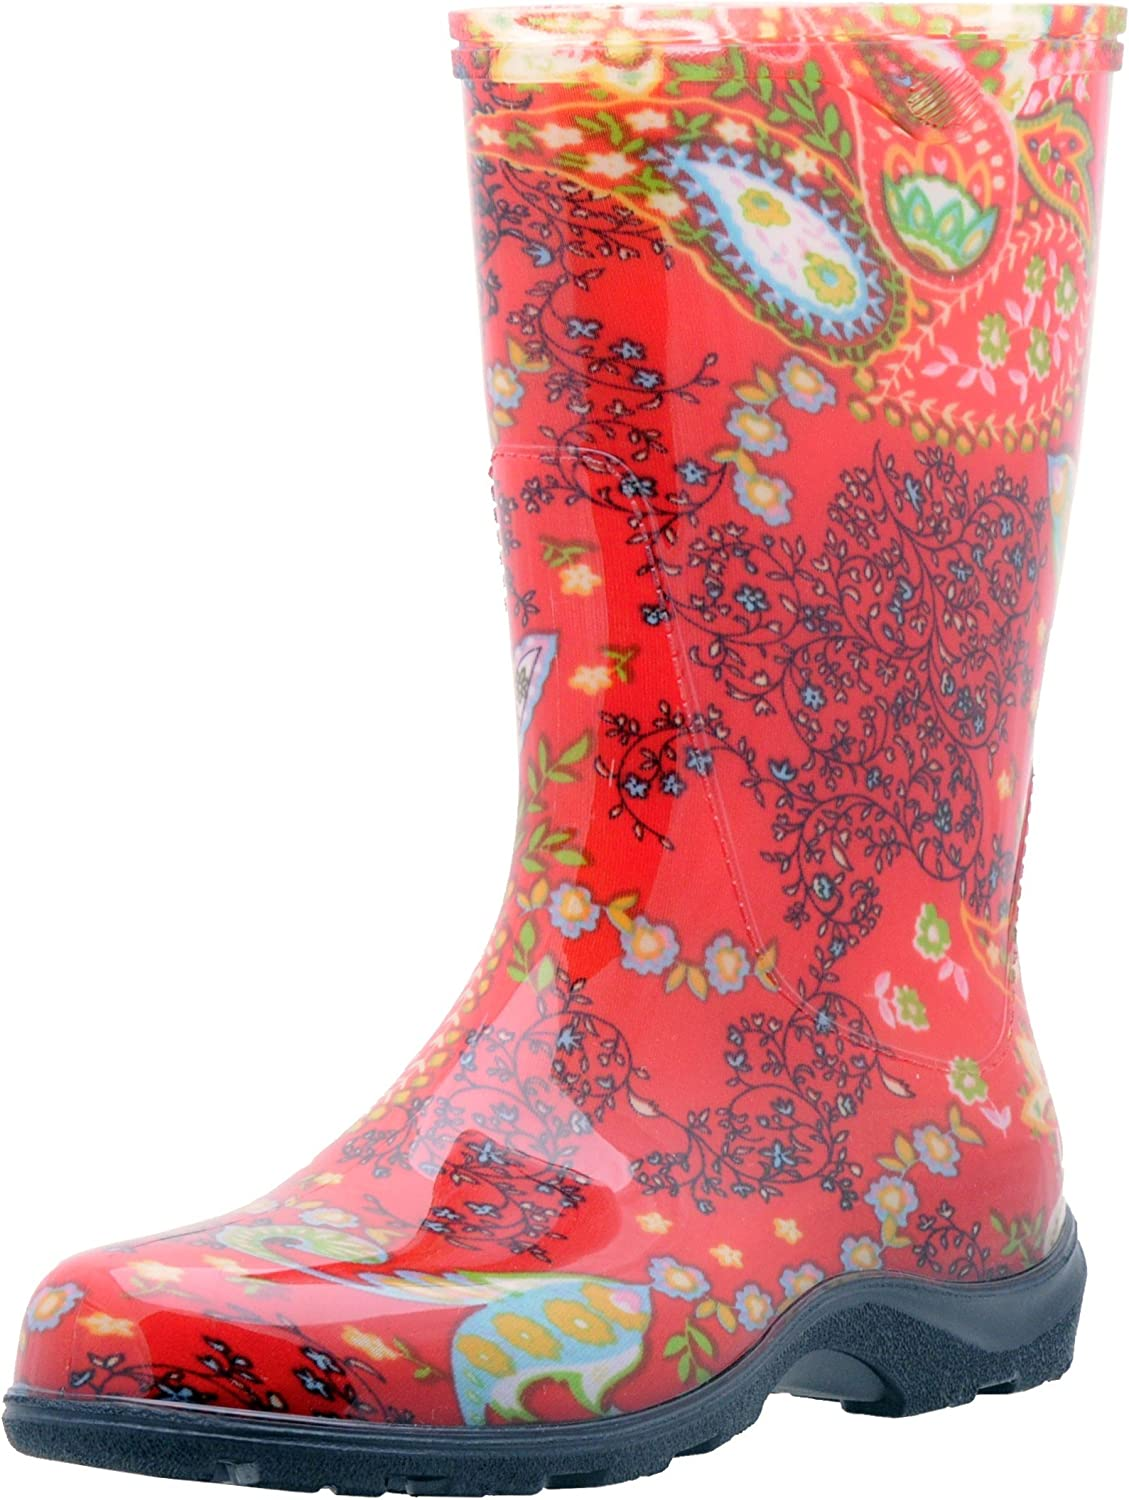 SloggersWomen's Waterproof Rain and Garden Boot with Comfort Insole, Paisley Red, Size 6, Style 5004RD06